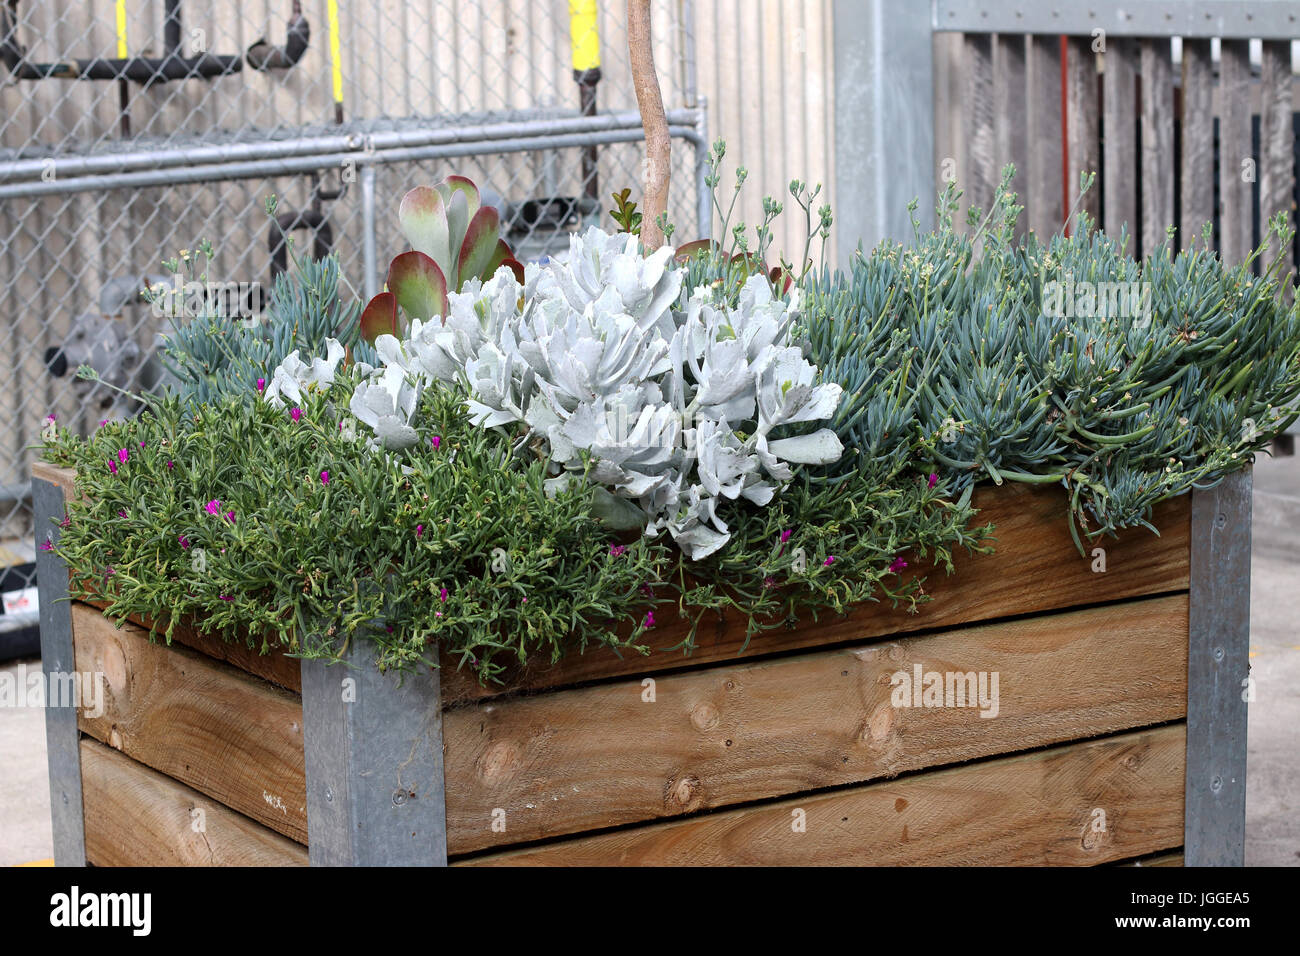 Desert plants Succulents - Flap Jacks, Ice plant, Blue Chalk sticks growing in garden raised bed - Stock Image